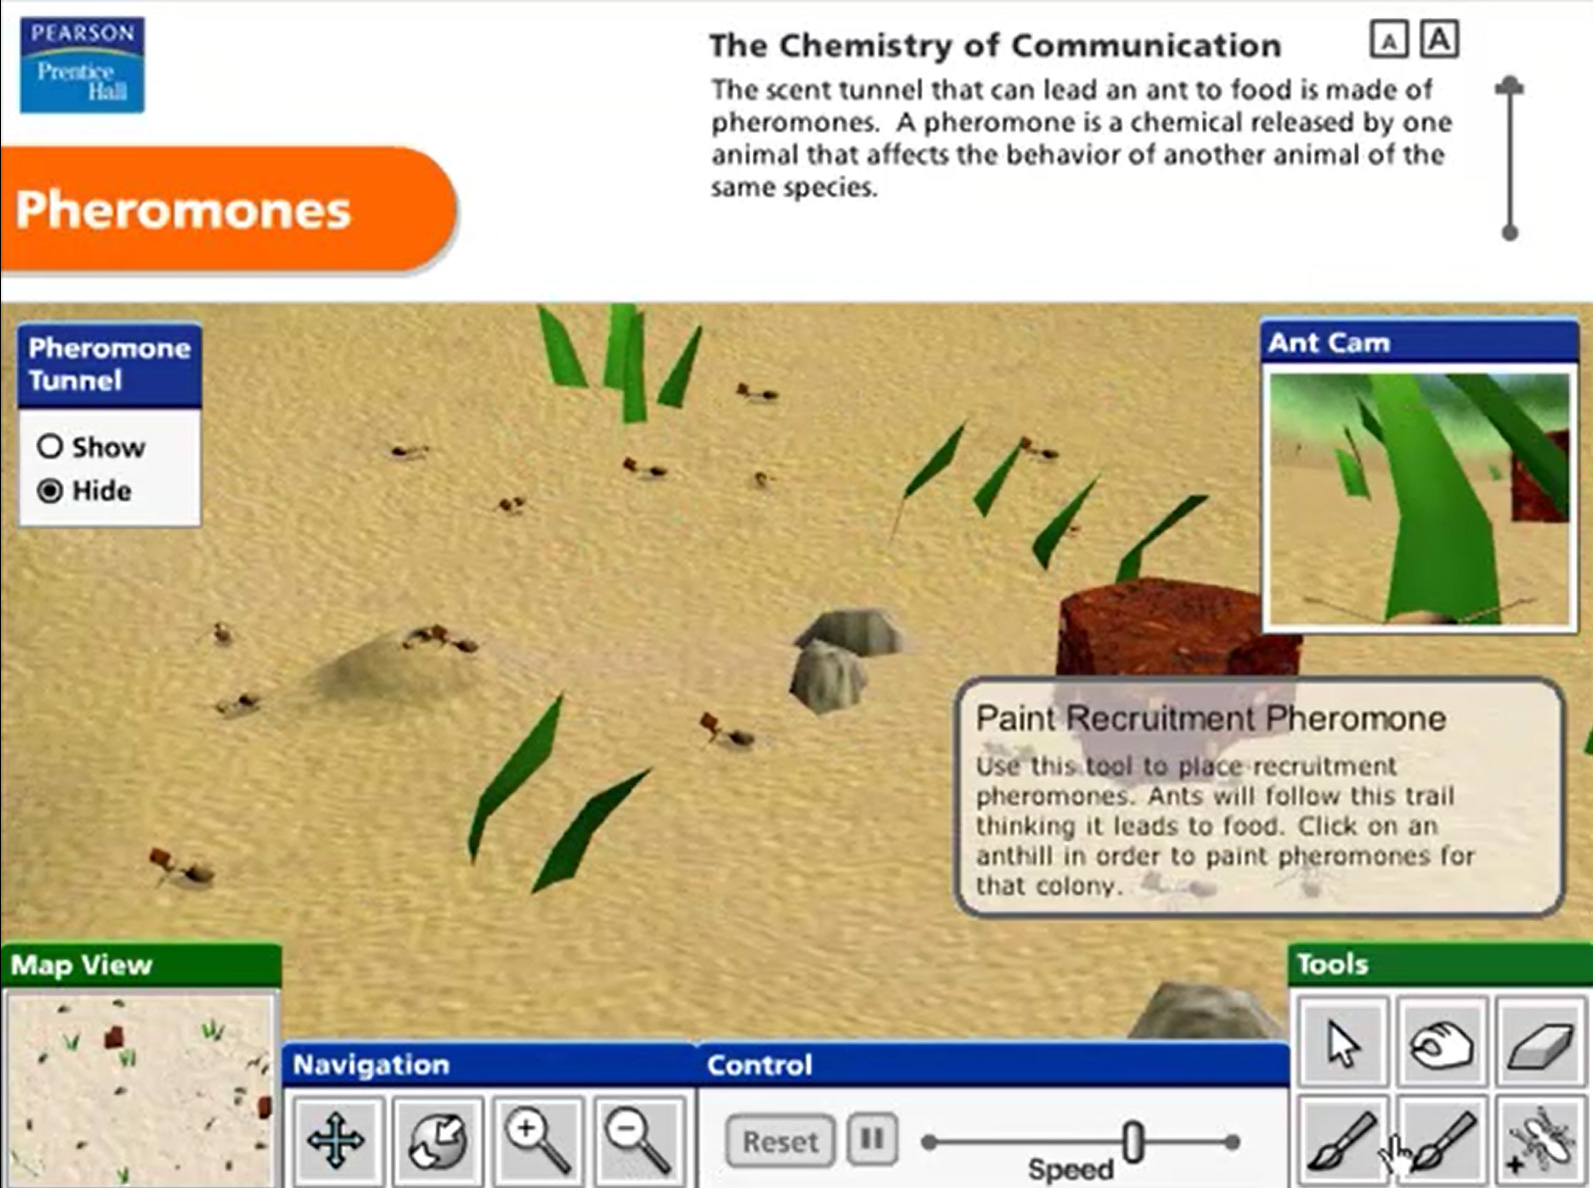 Pearson Education Virtual Science Experiments by ForgeFX Simulations, Pheromones Simulation-Based Training